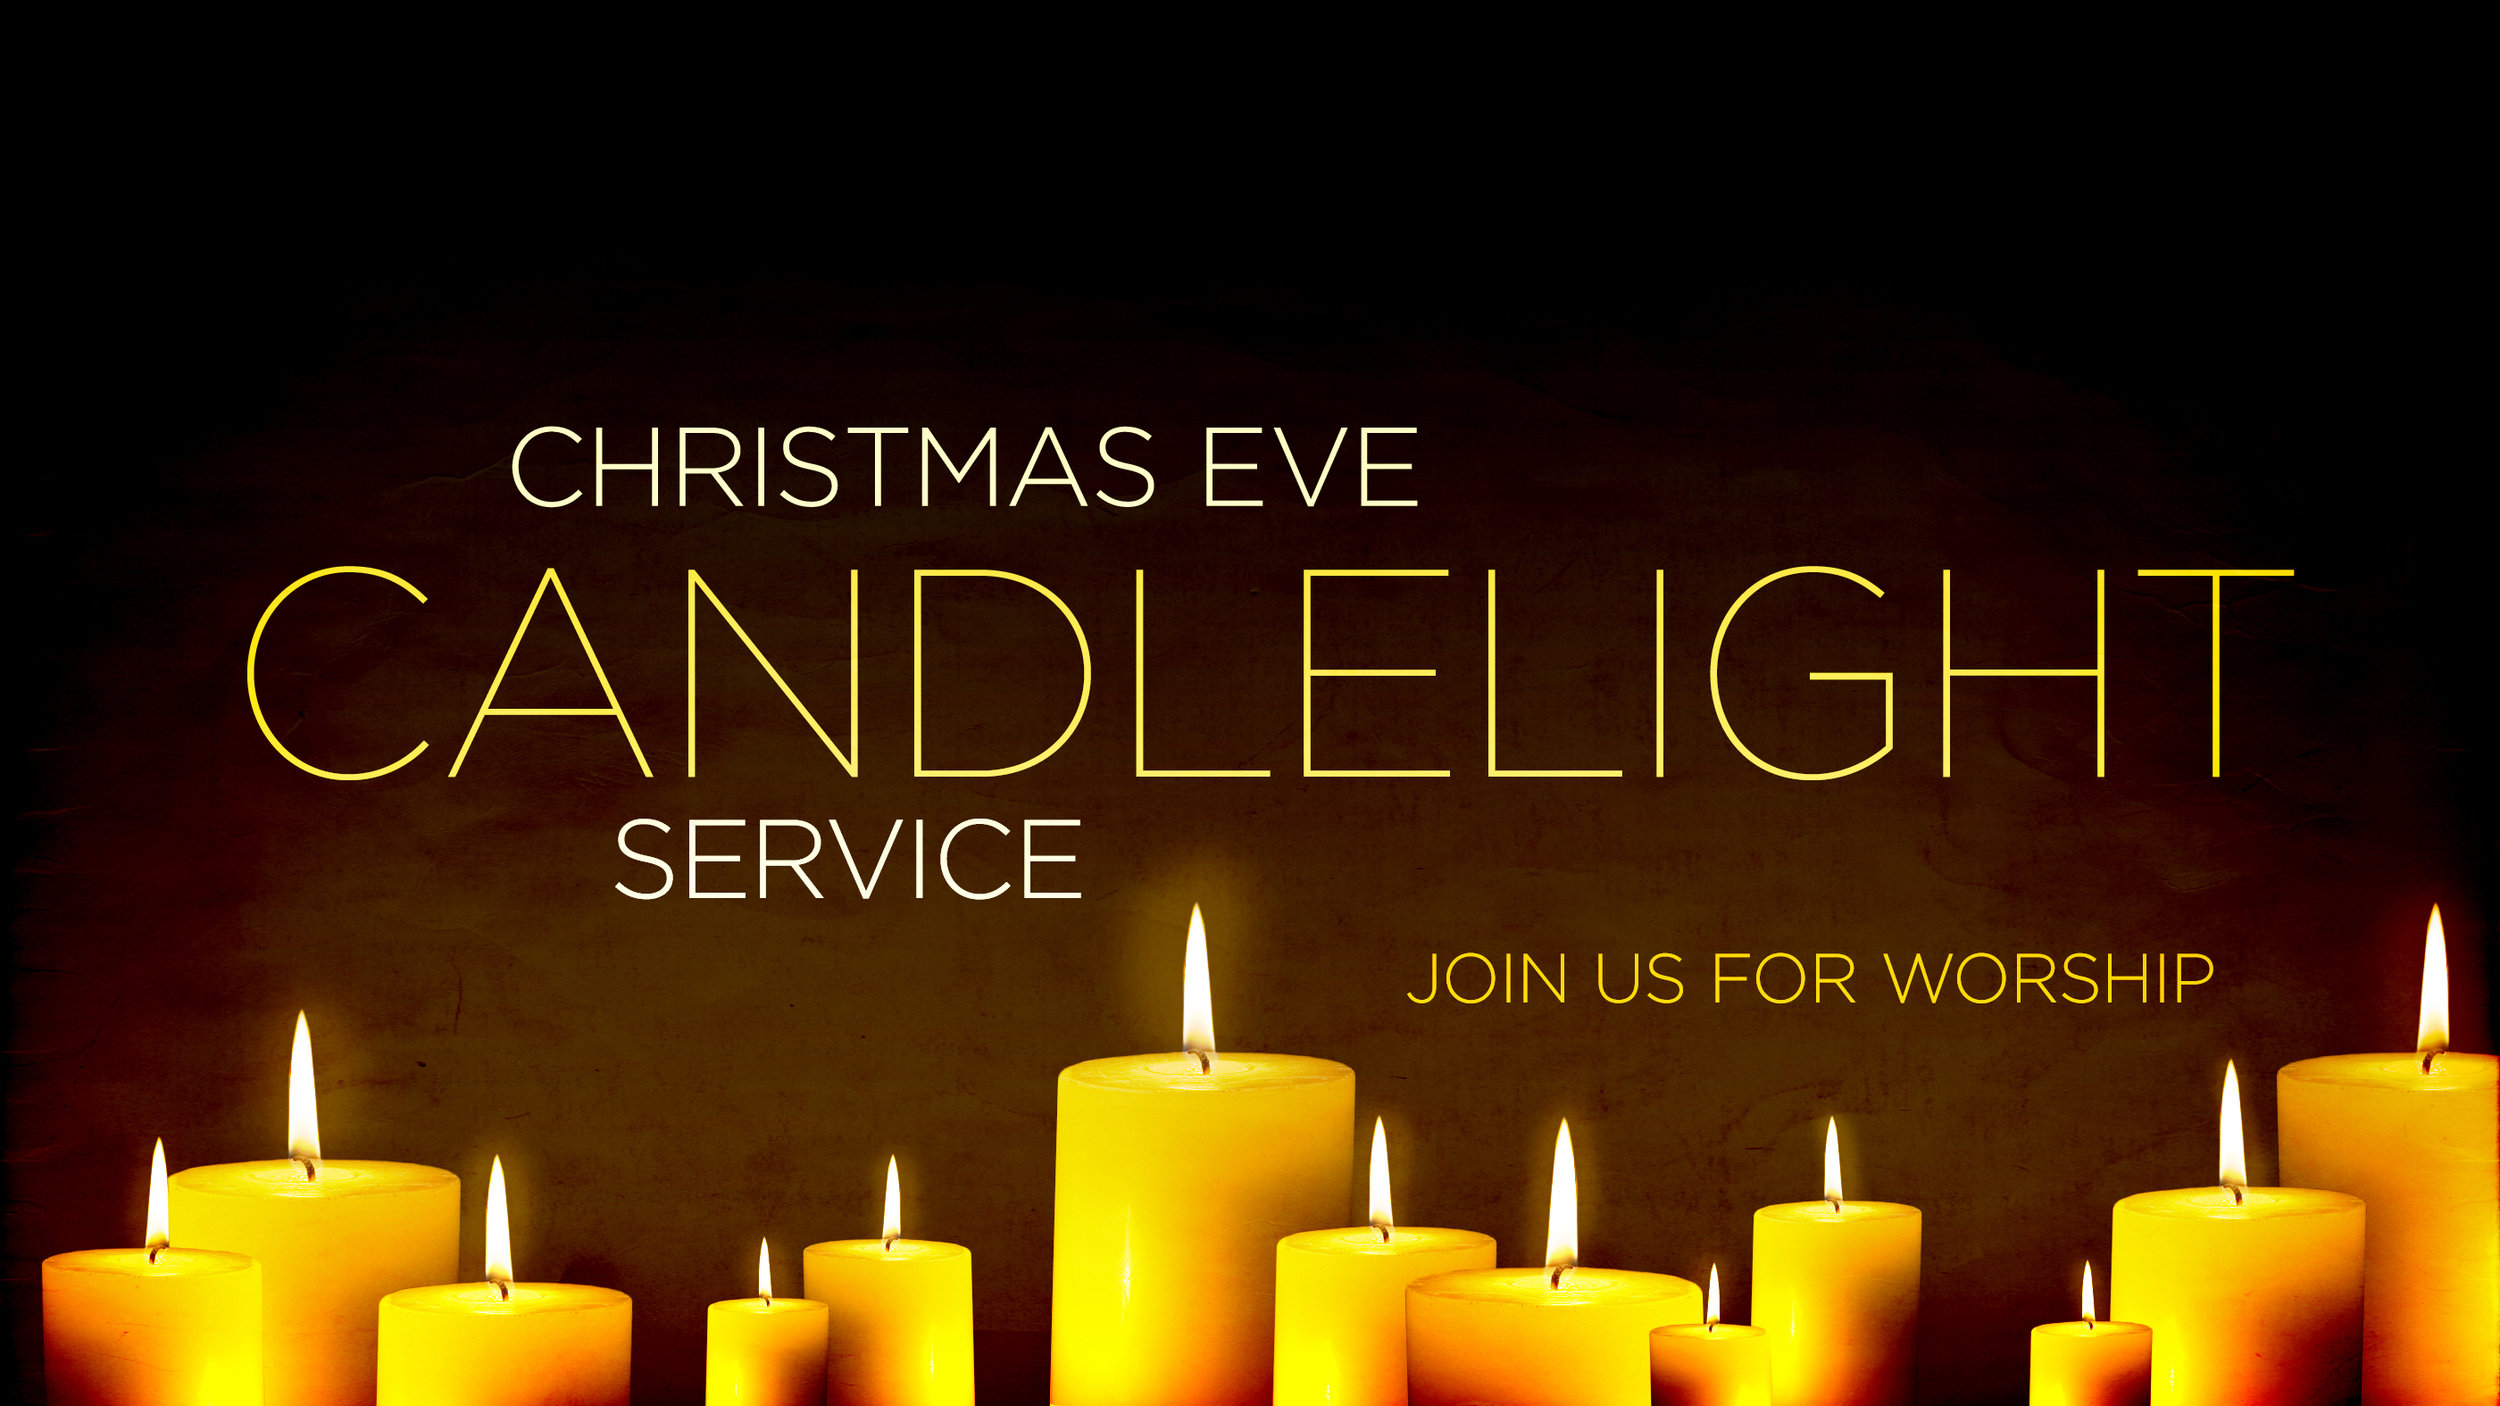 An evening of Christmas worship - Carol singing, a kid's program, special music, a pastoral contemplation and a time of fellowship after the service.